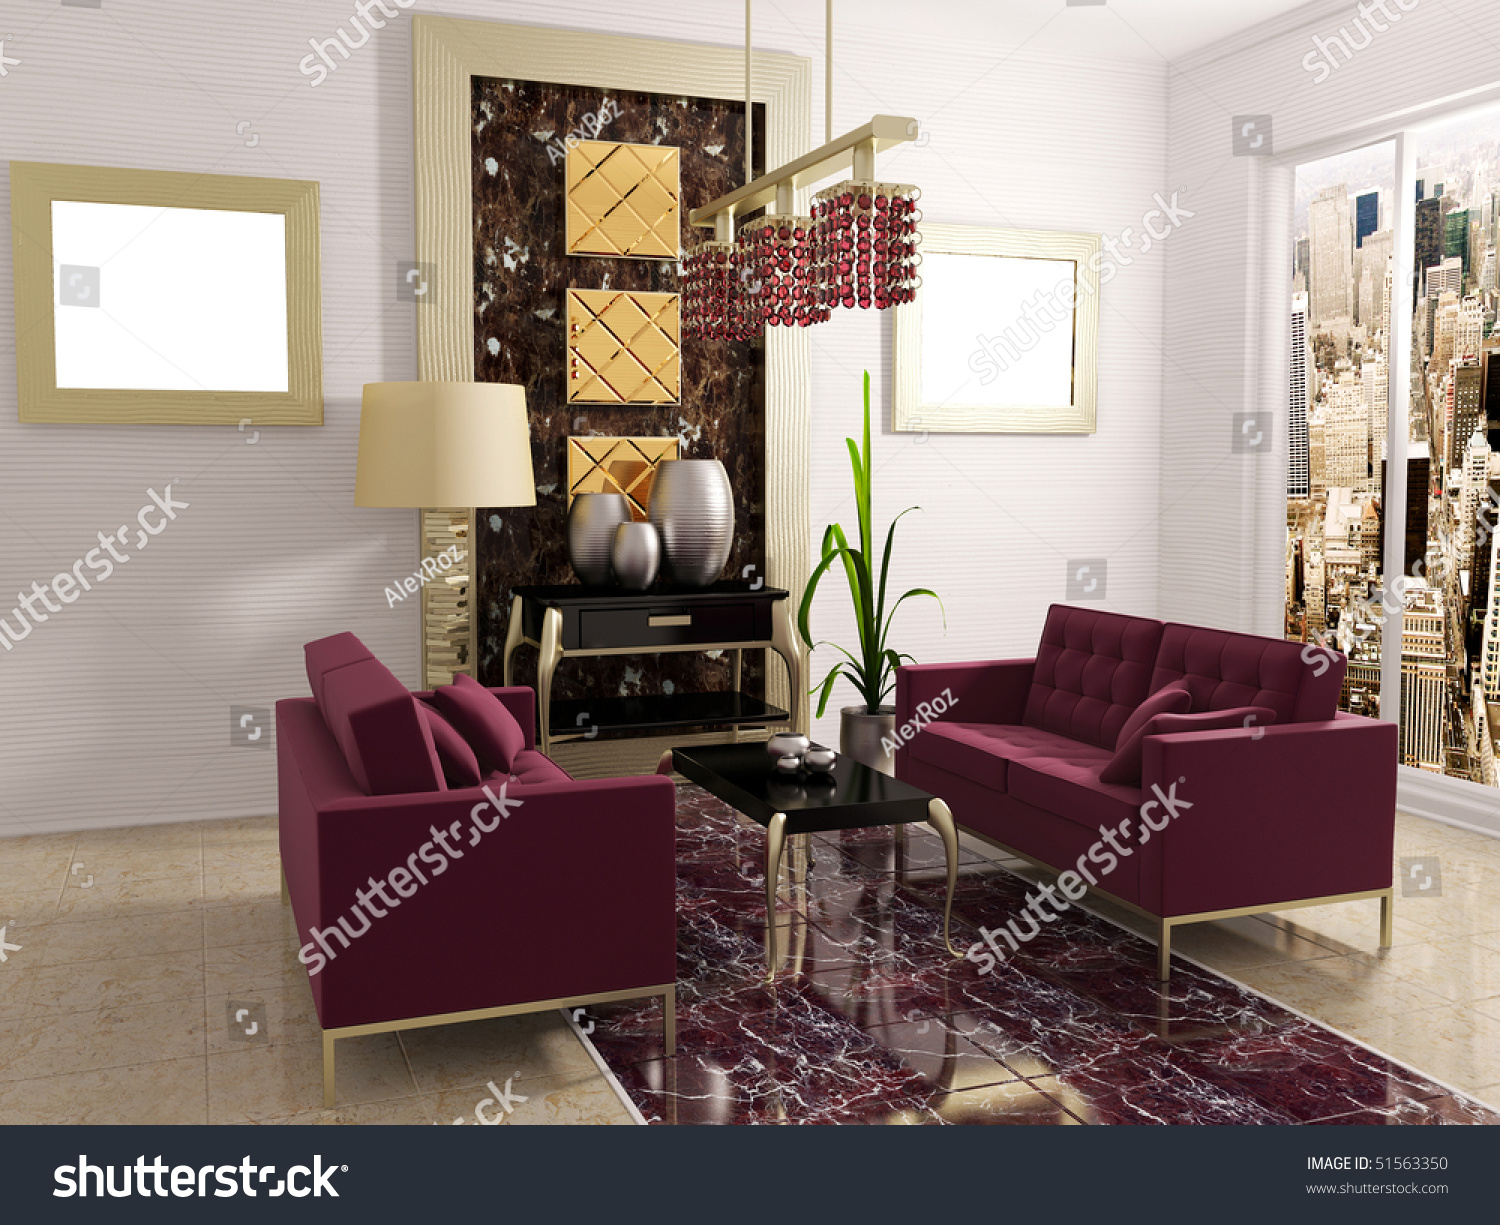 modern luxury room with classic furniture. modern luxury room classic furniture stock illustration